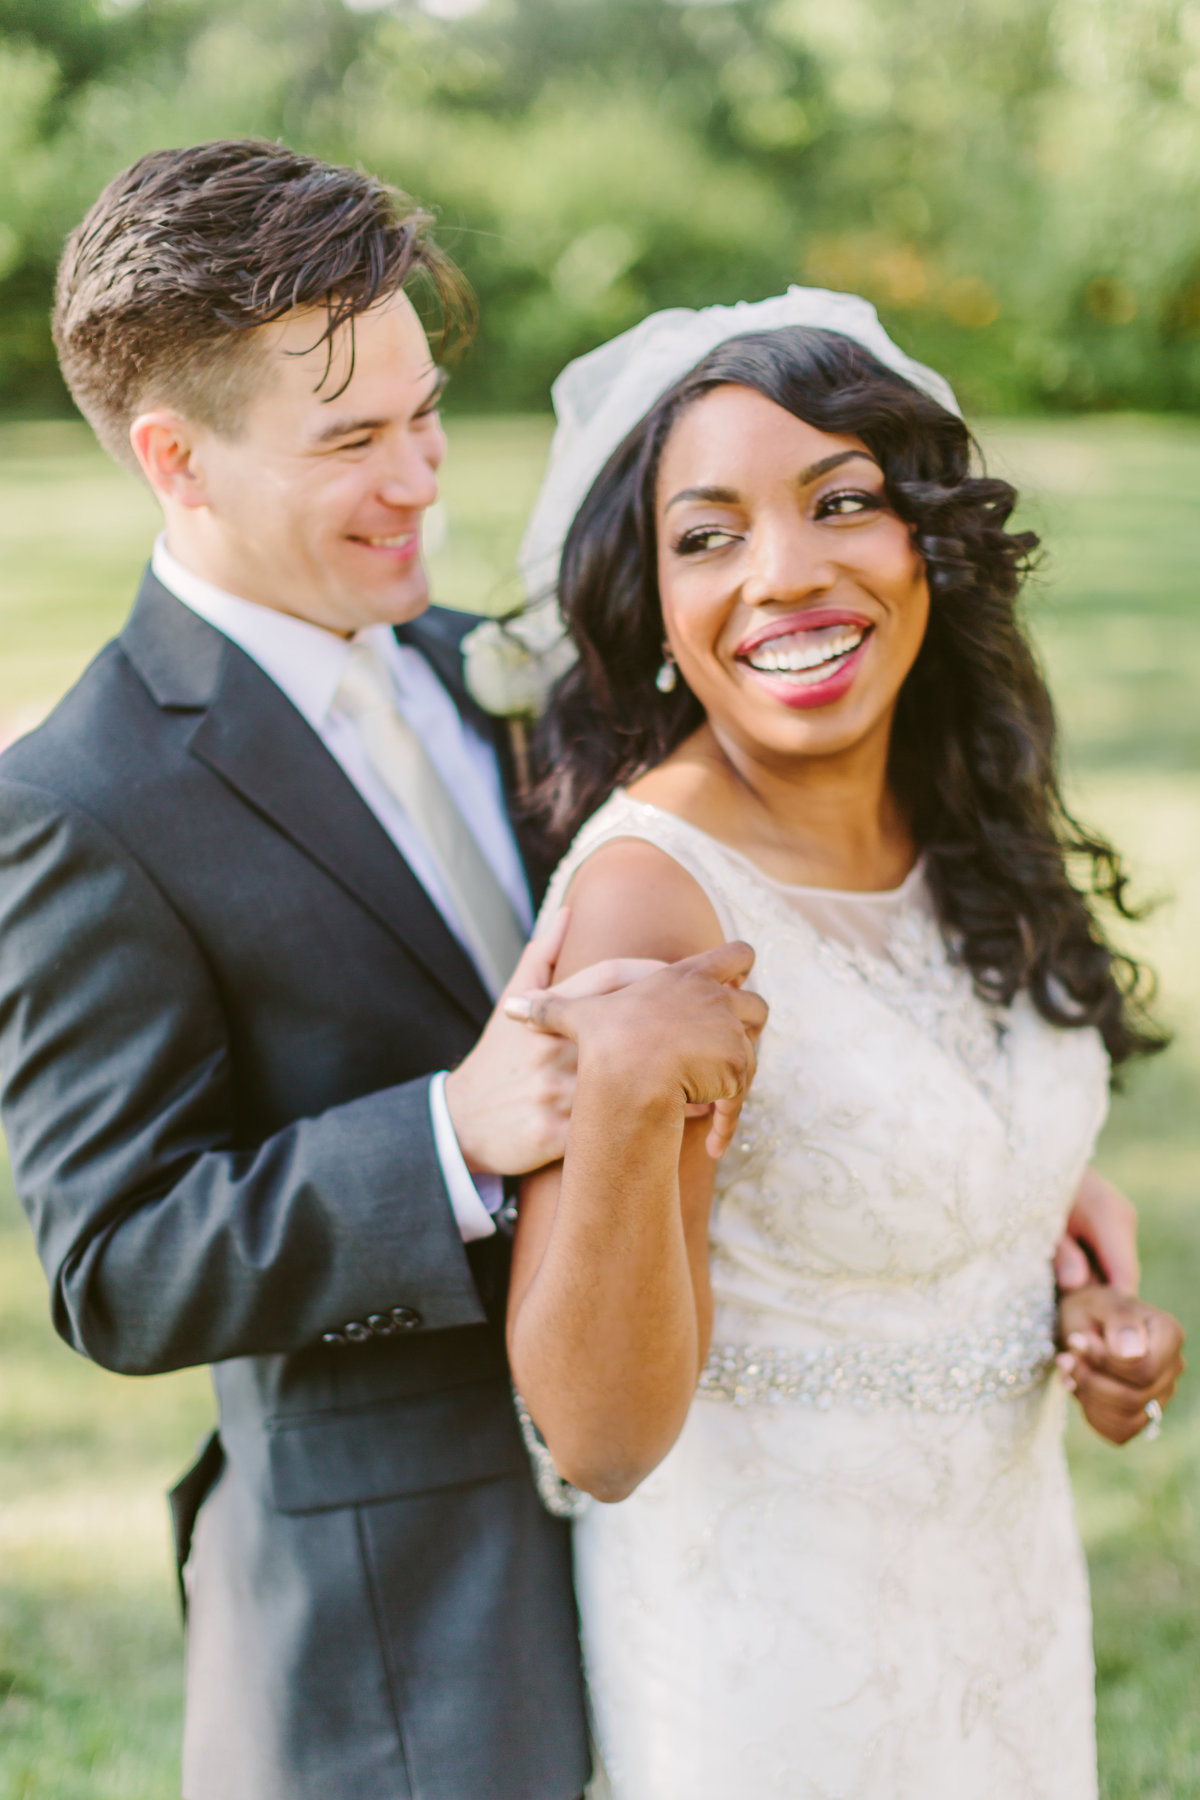 shaunae-teske-photography-weddings-7